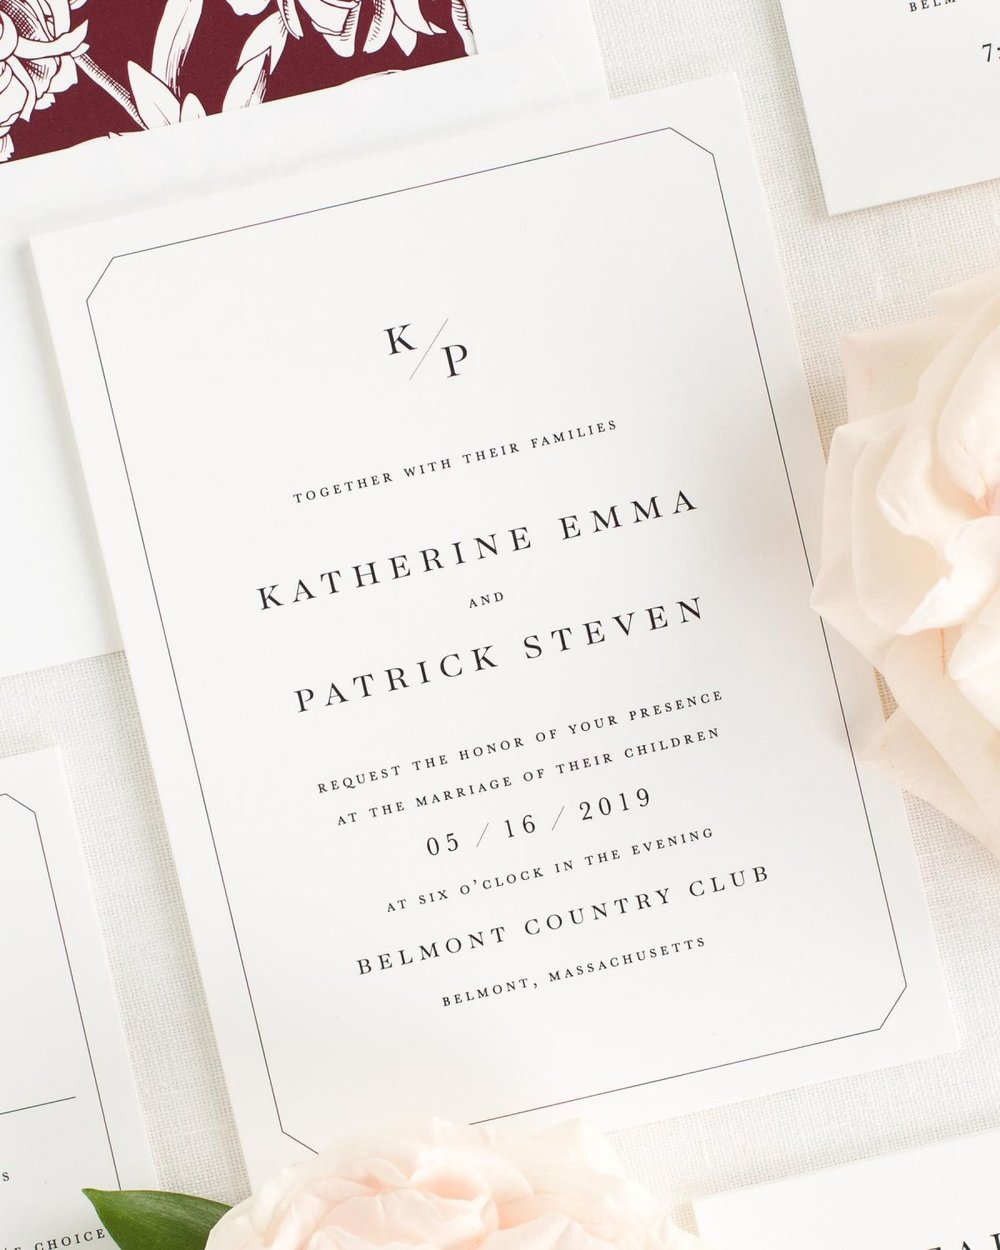 Katherine-Wedding-Invitations-1-1200x1500.jpg